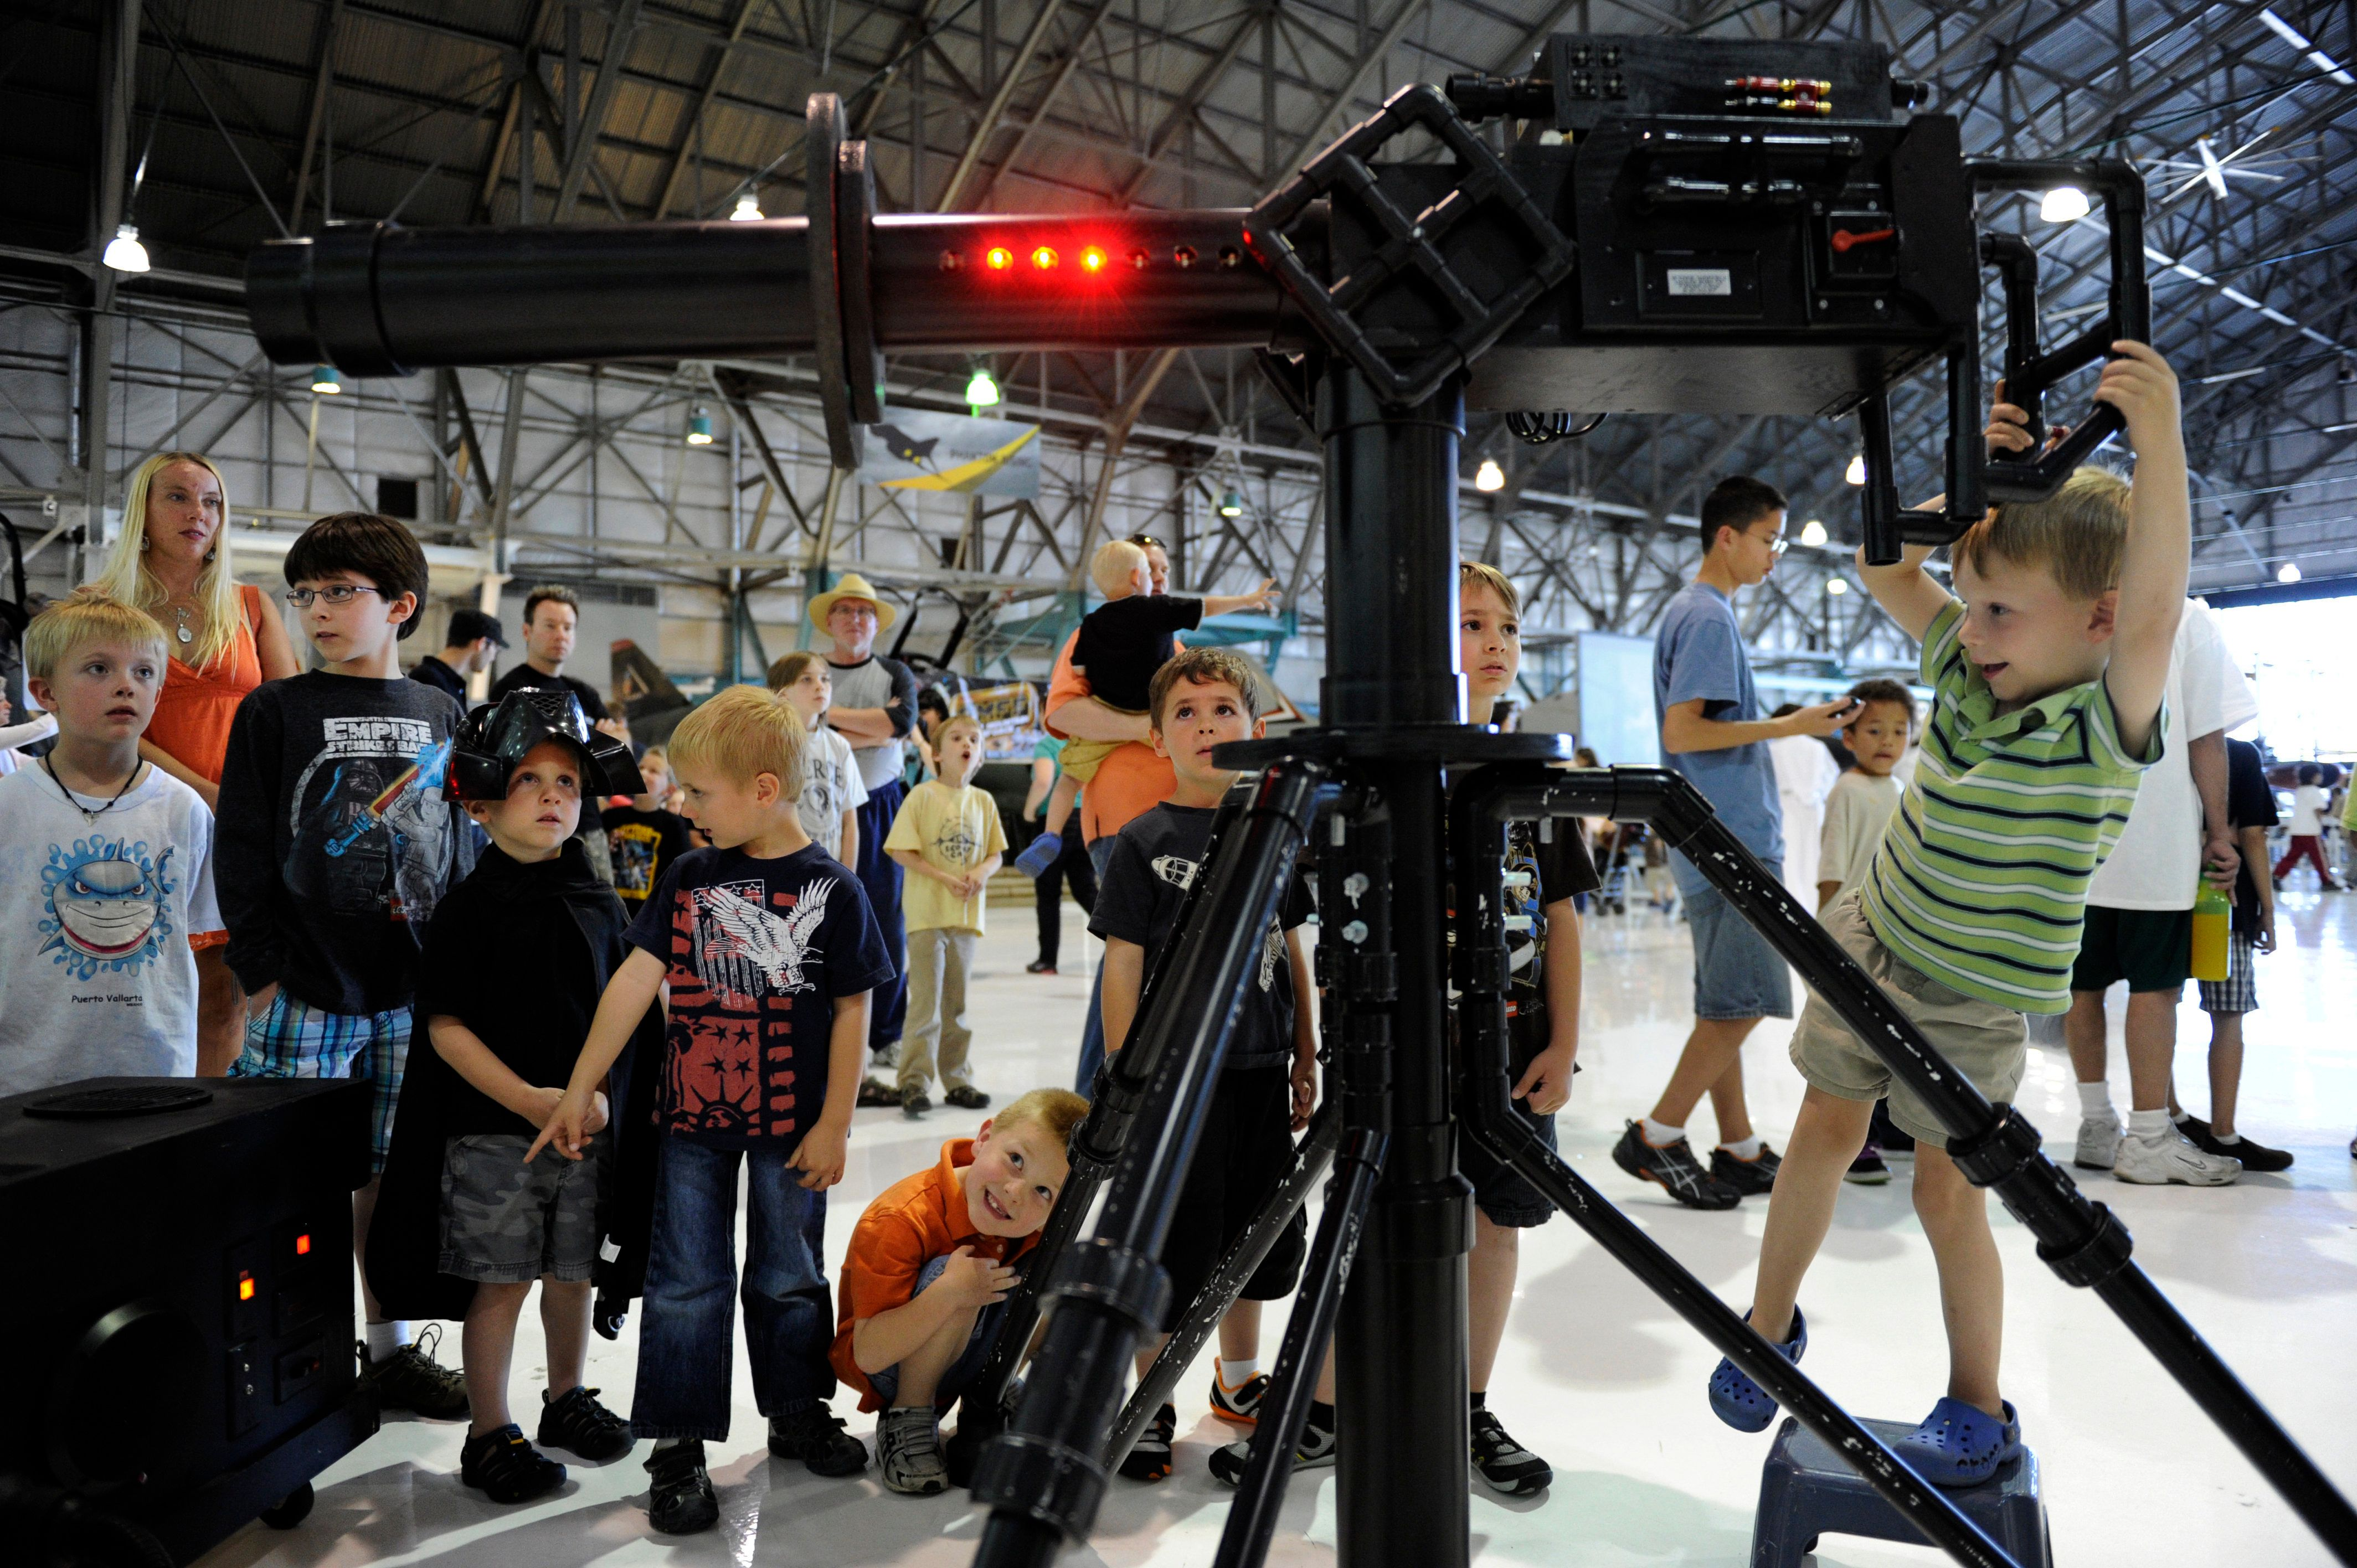 Geoffrey Boden, 4, tries out a laser gun while visiting 'Star Wars at the Hanger' at Wings Over the Rockies Air & Space Museum in Denver, CO, May 04, 2012. The family-event offered tours of an X-Wing fighter ship, combat training with the Jedi Lightsaber Academy and a look at the 'Dark Side' at the Stormtrooper Training School. For many Star Wars Fans May the fourth is also know as 'Star Wars Day... May the Fourth be with you.' Craig F. Walker, The Denver Post  (Photo By Craig F. Walker/The Denver Post via Getty Images)